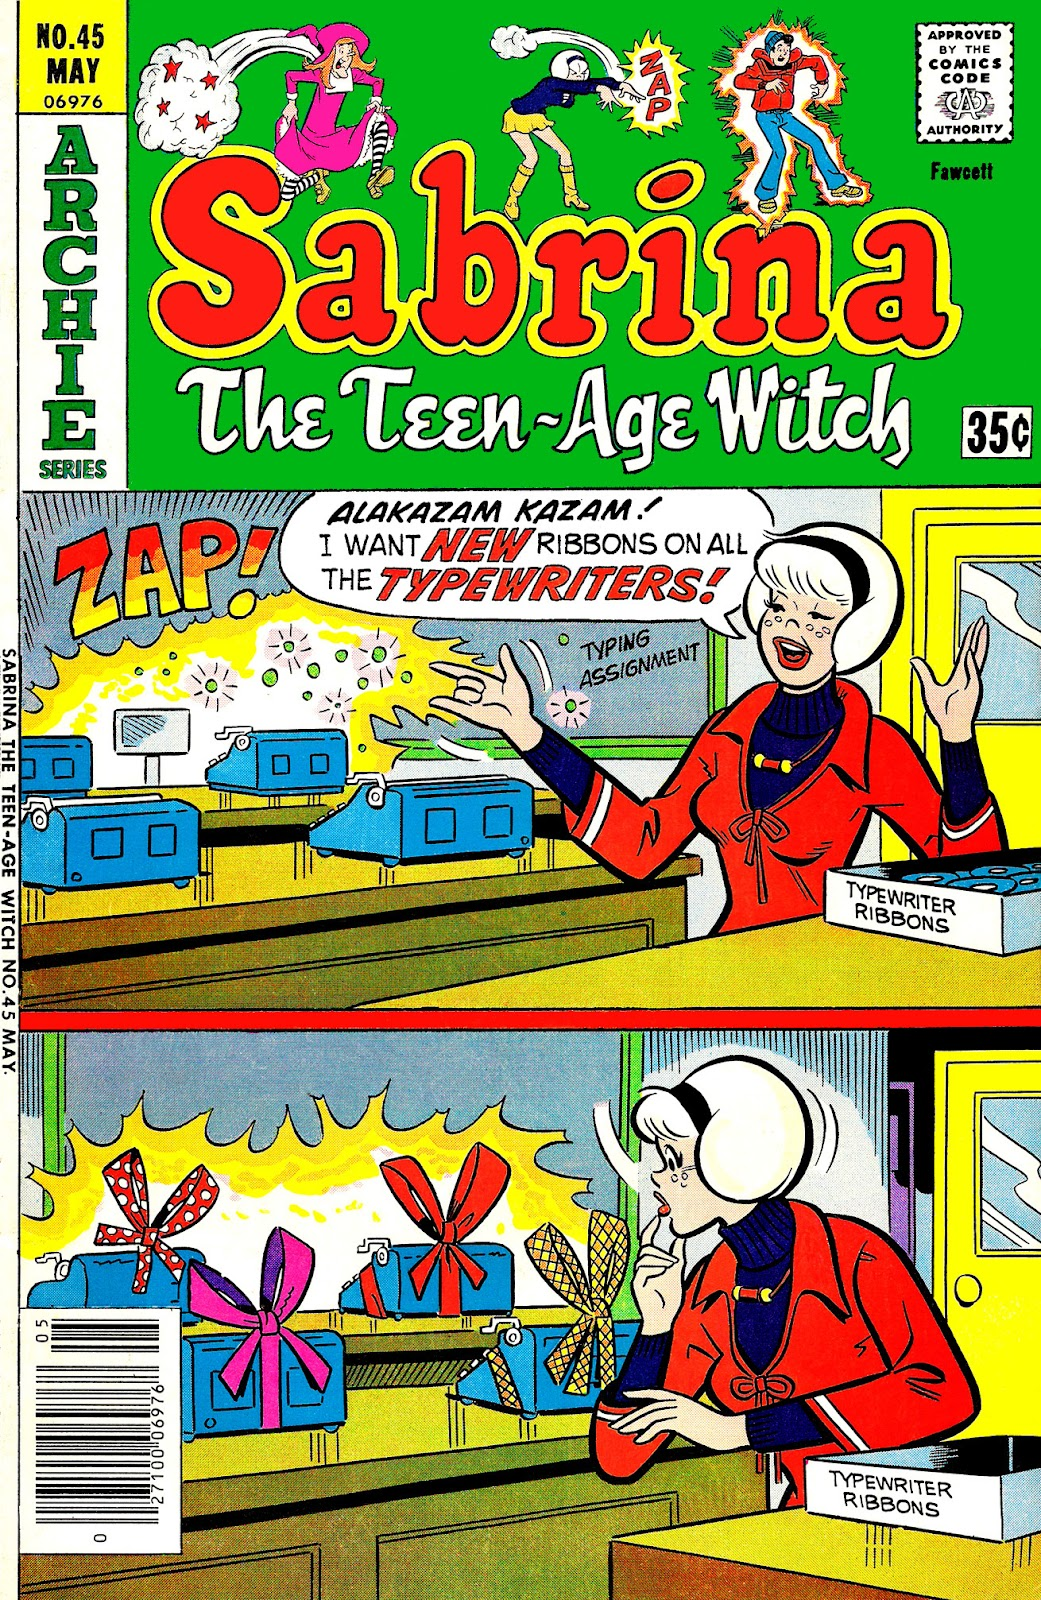 Sabrina The Teenage Witch (1971) issue 45 - Page 1